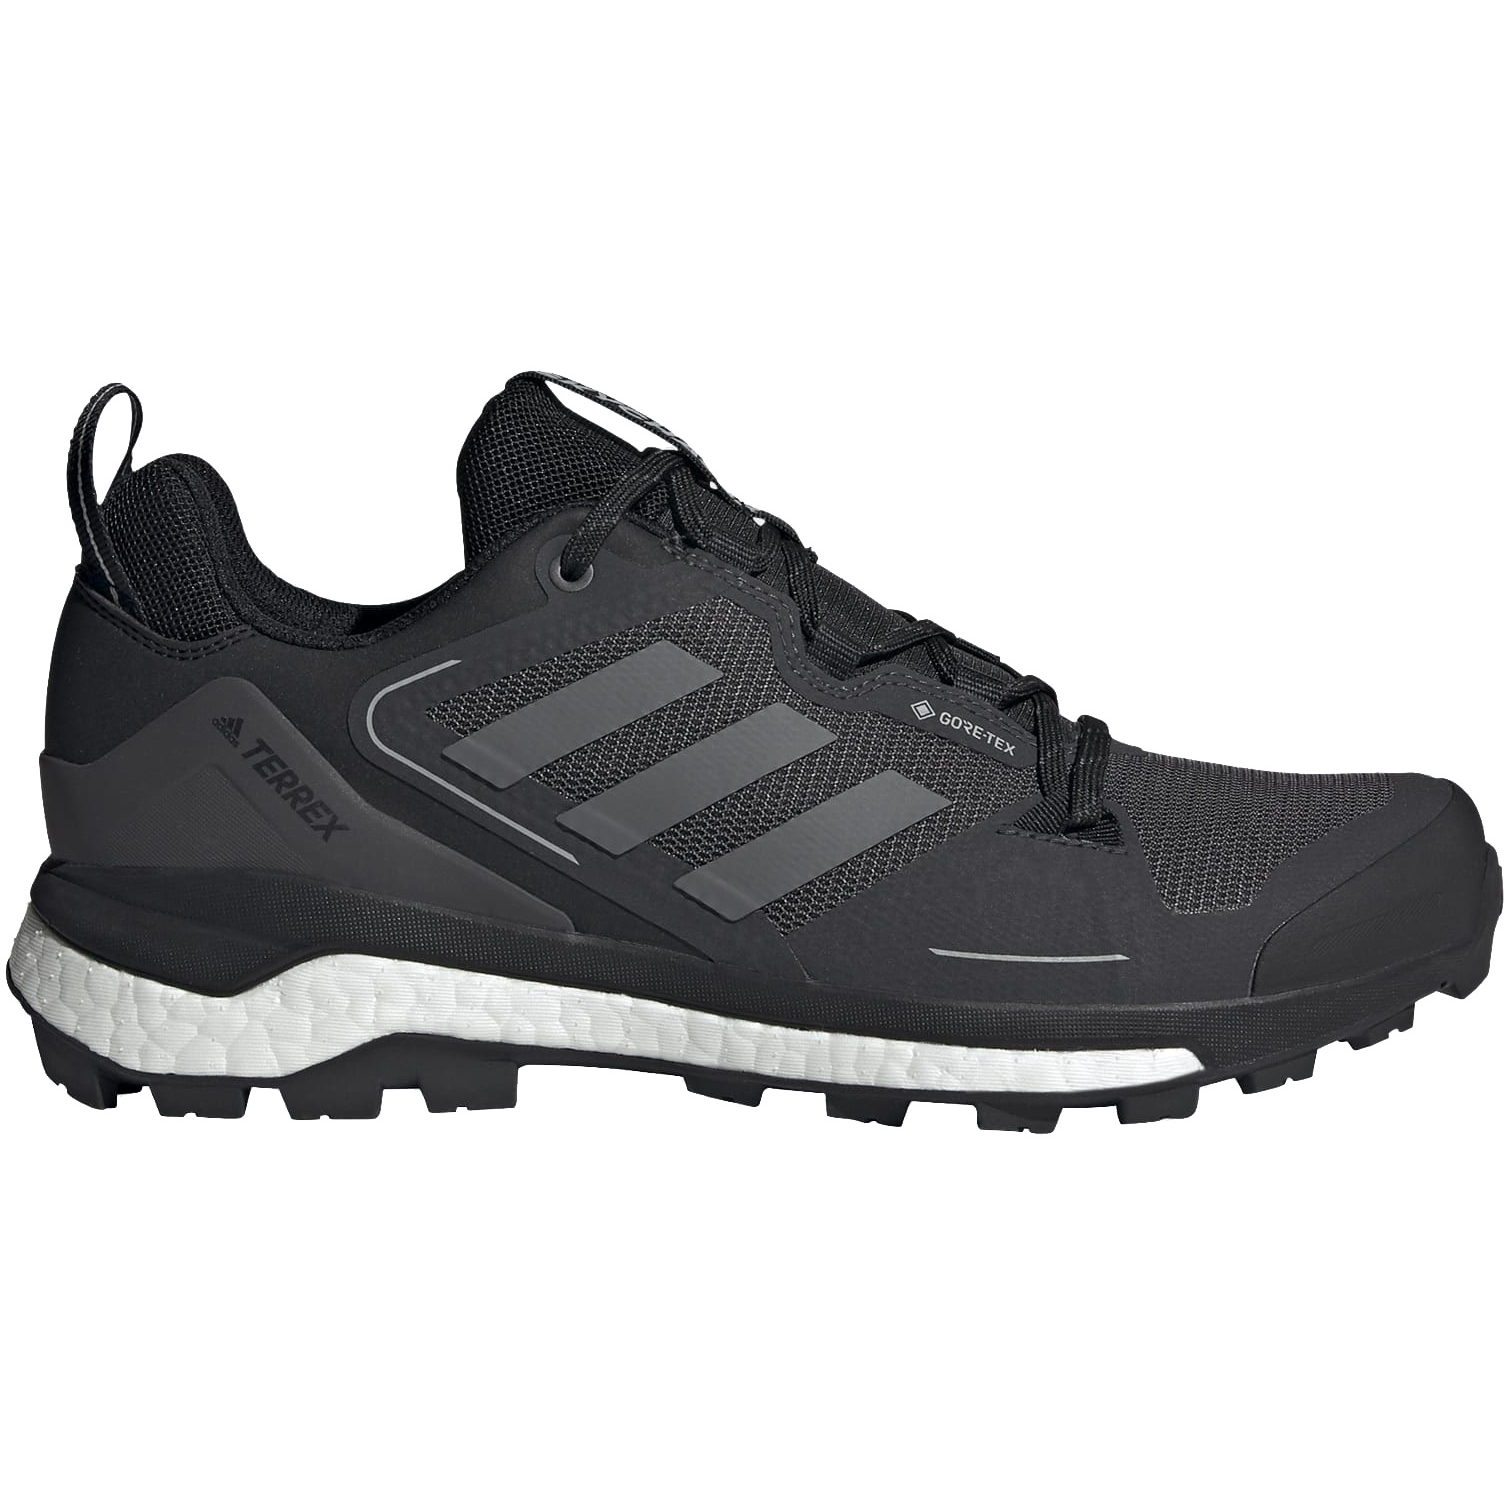 adidas Men's TERREX Skychaser GORE-TEX 2.0 Hiking Shoes - core black/grey four/dgh solid grey FX4547